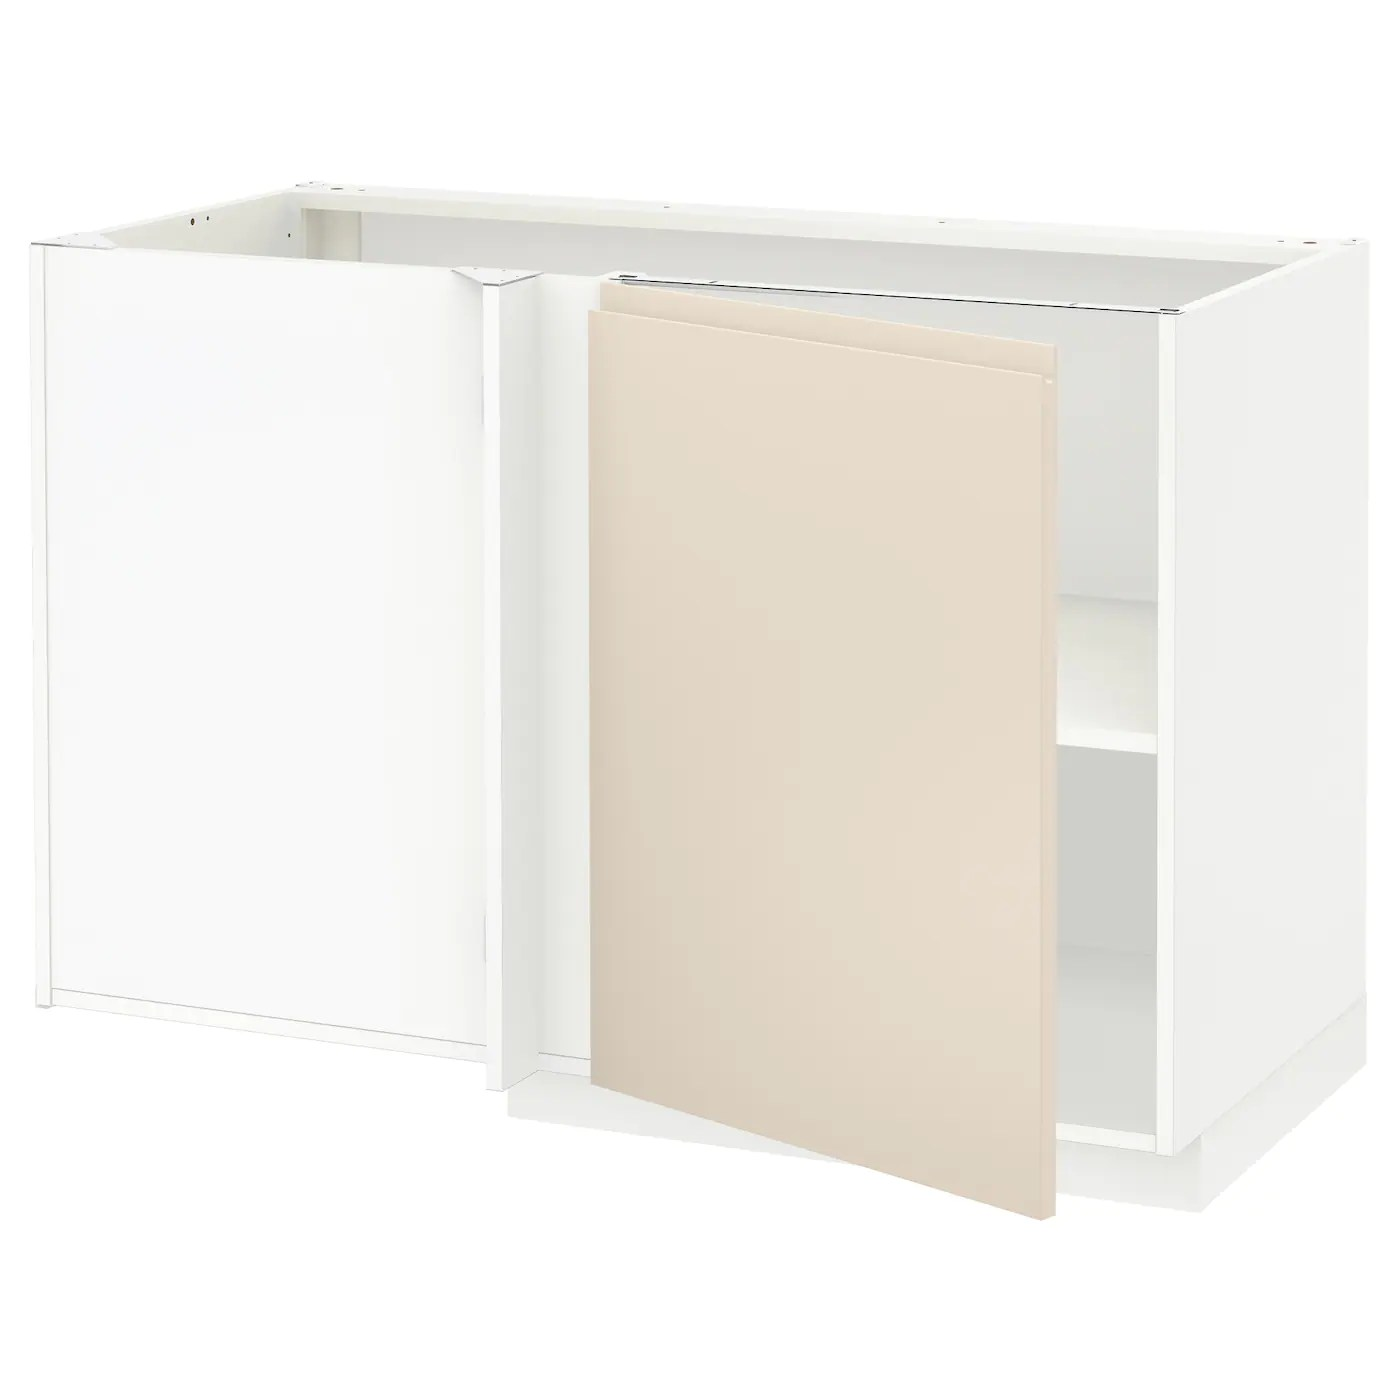 Ikea Küche Voxtorp Beige Metod Corner Base Cabinet With Shelf White Voxtorp Light